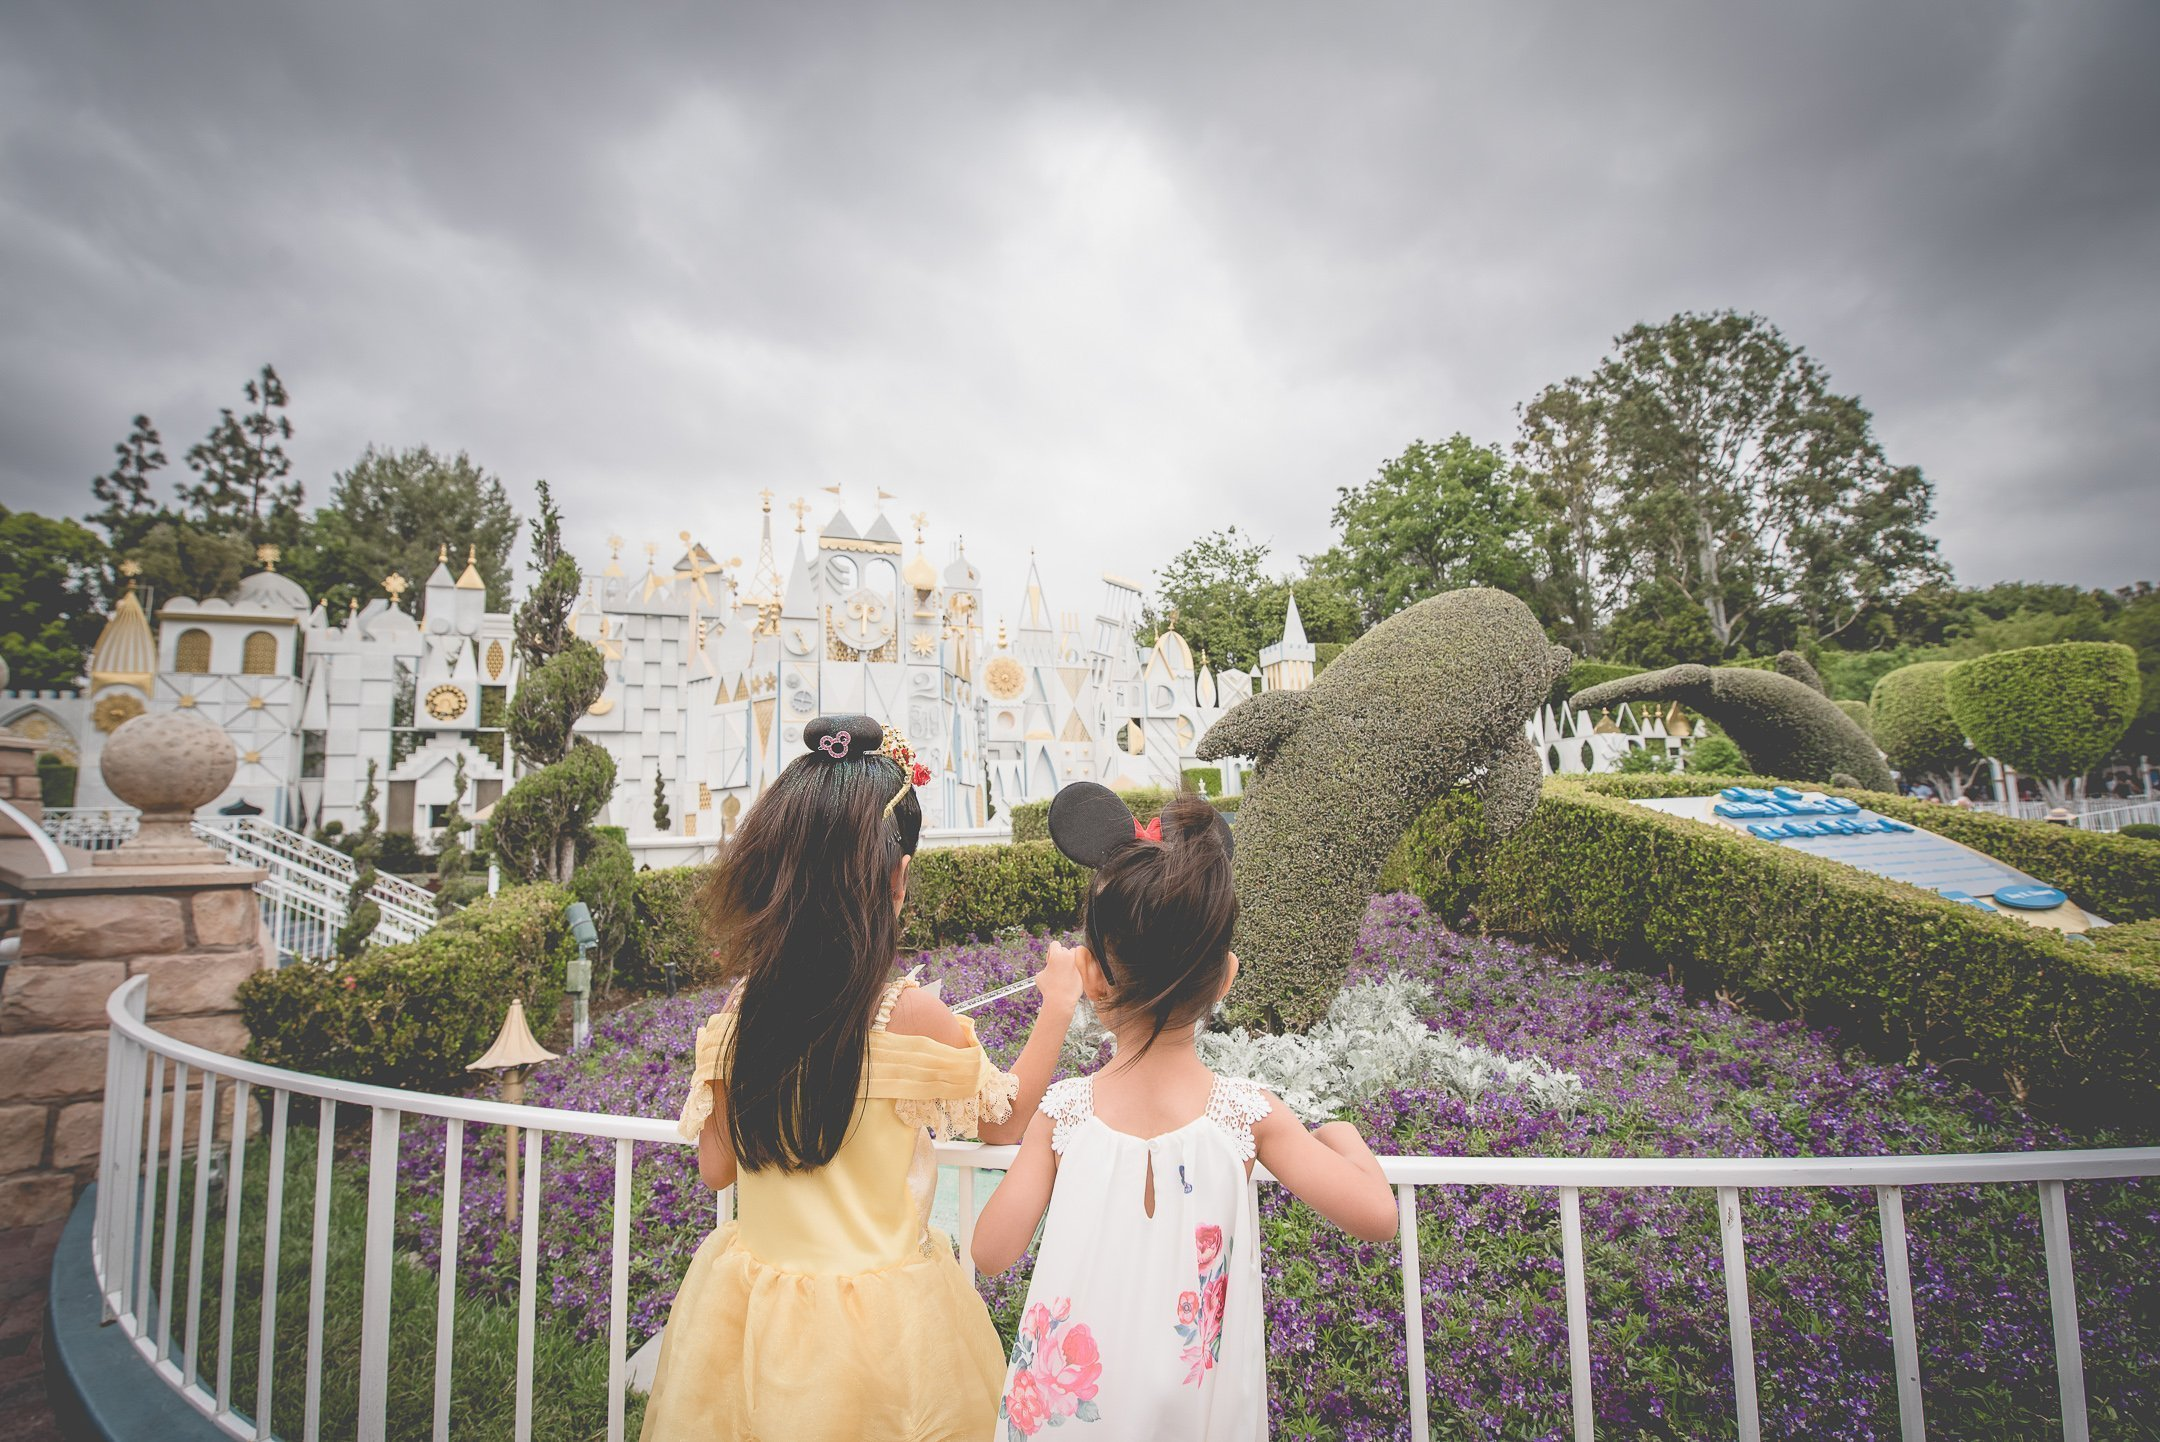 Photo of Sisters by the It's a small world ride in Disneyland, CA